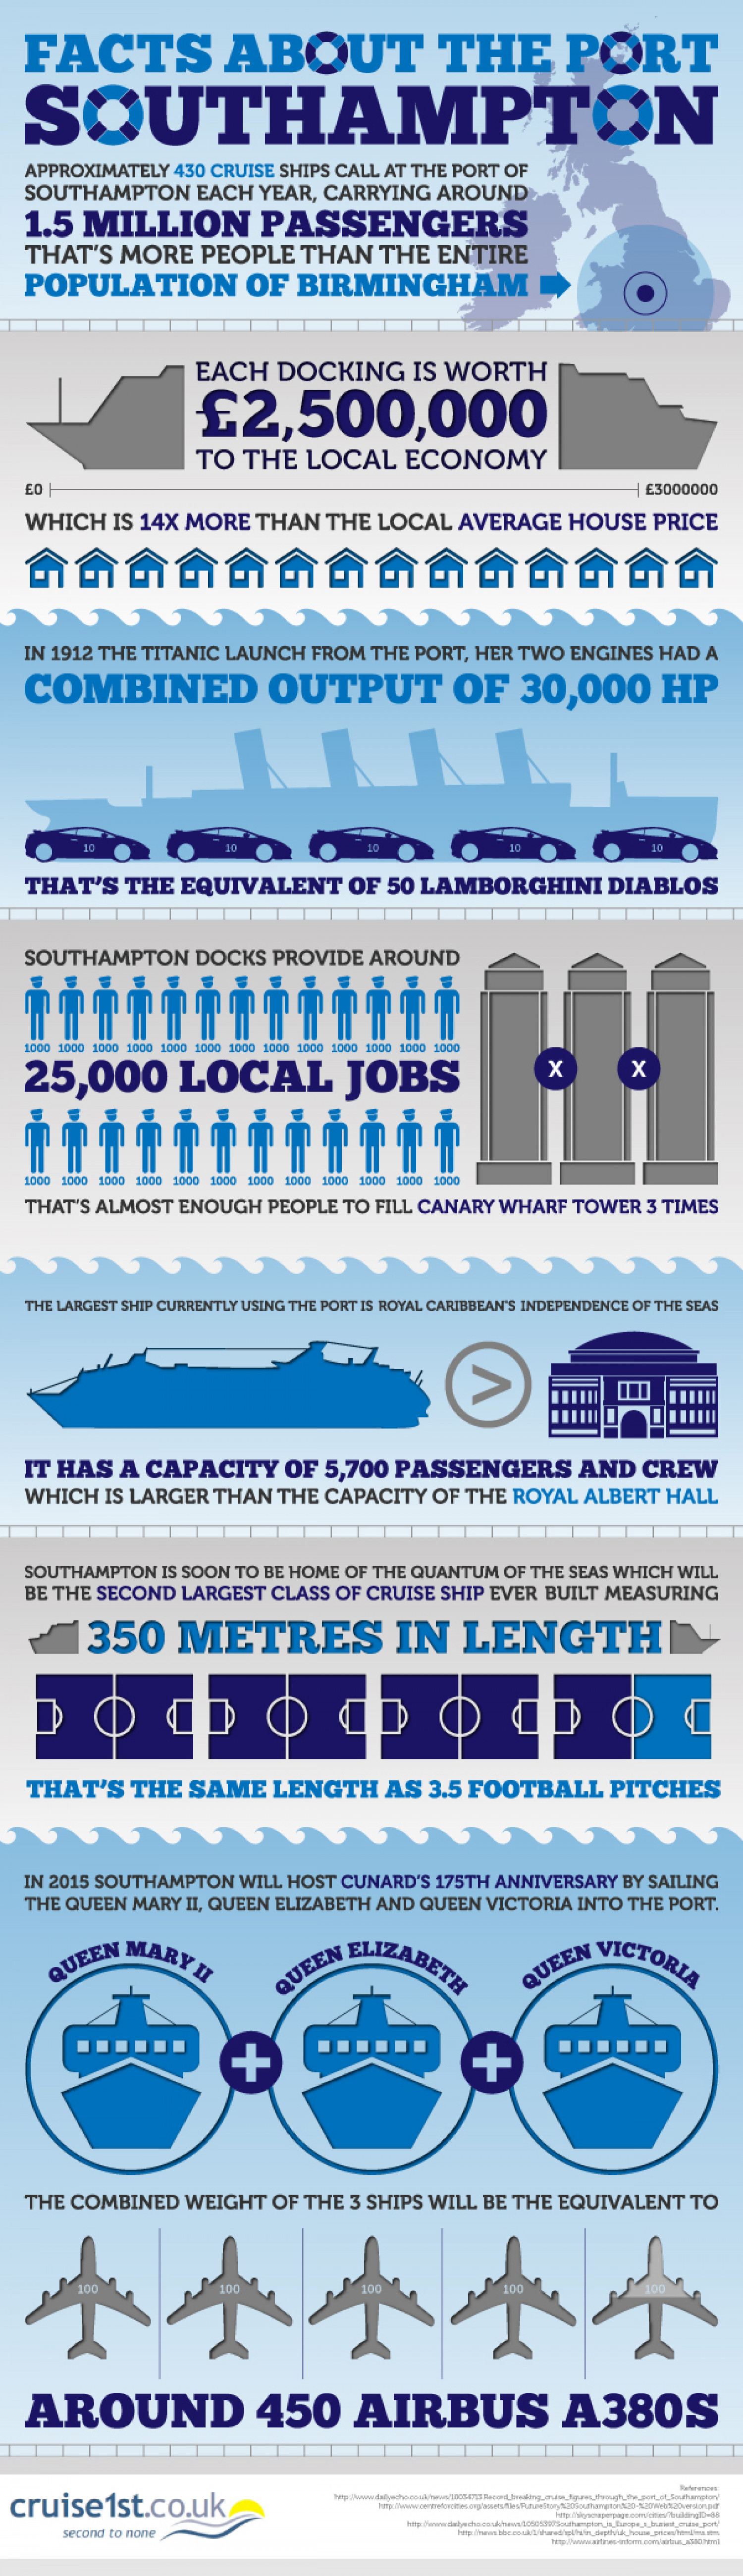 Facts About The Port of Southampton Infographic